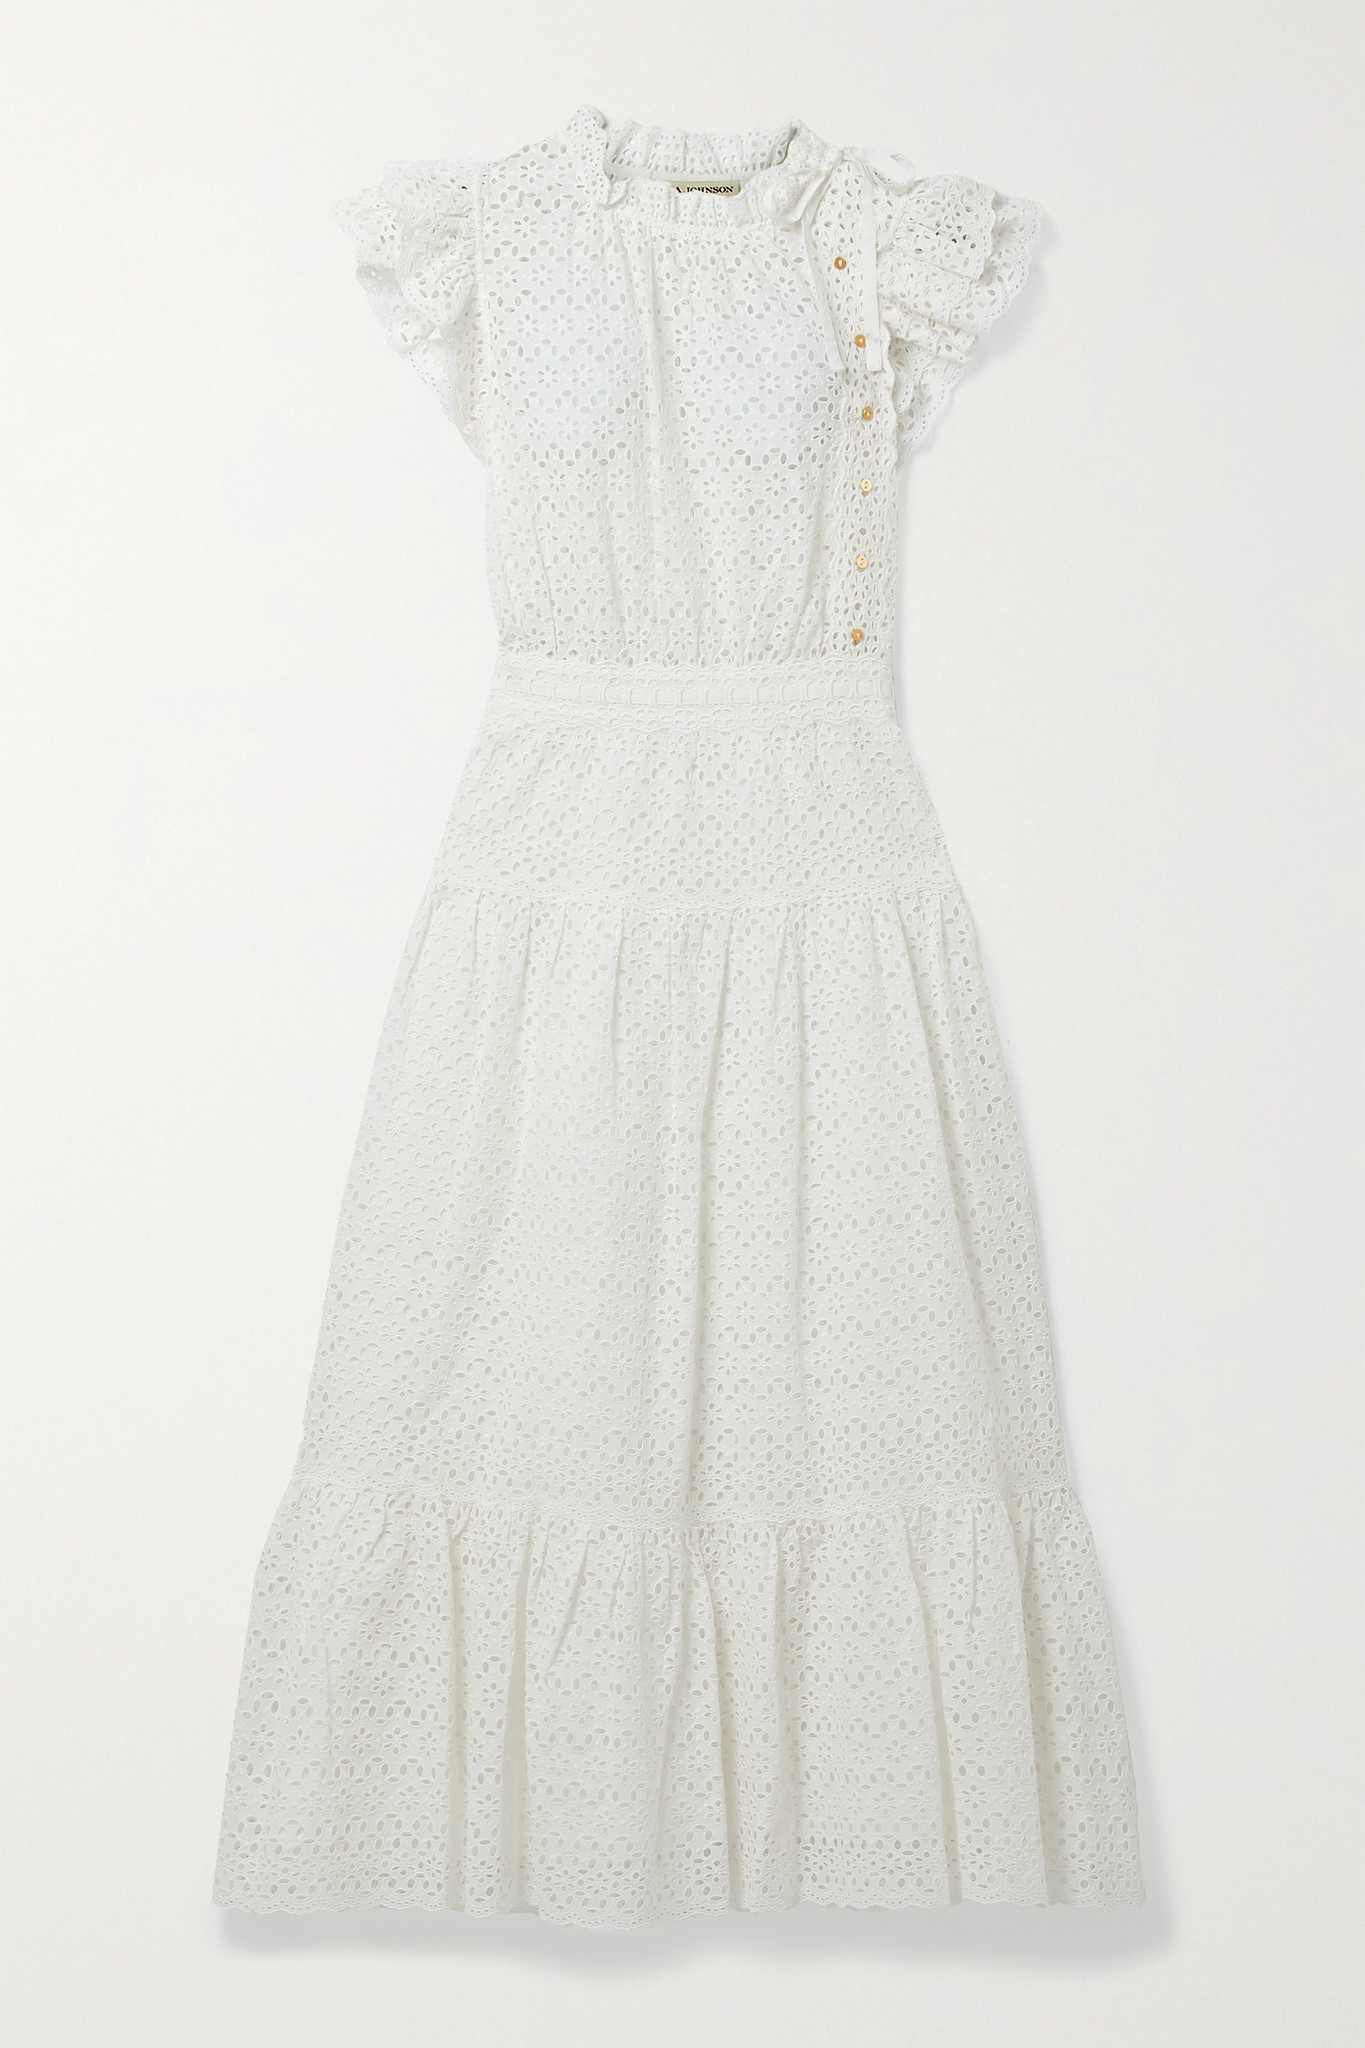 ULLA JOHNSON - Lucille Tie-detailed Ruffled Broderie Anglaise Cotton Midi Dress - White - US6